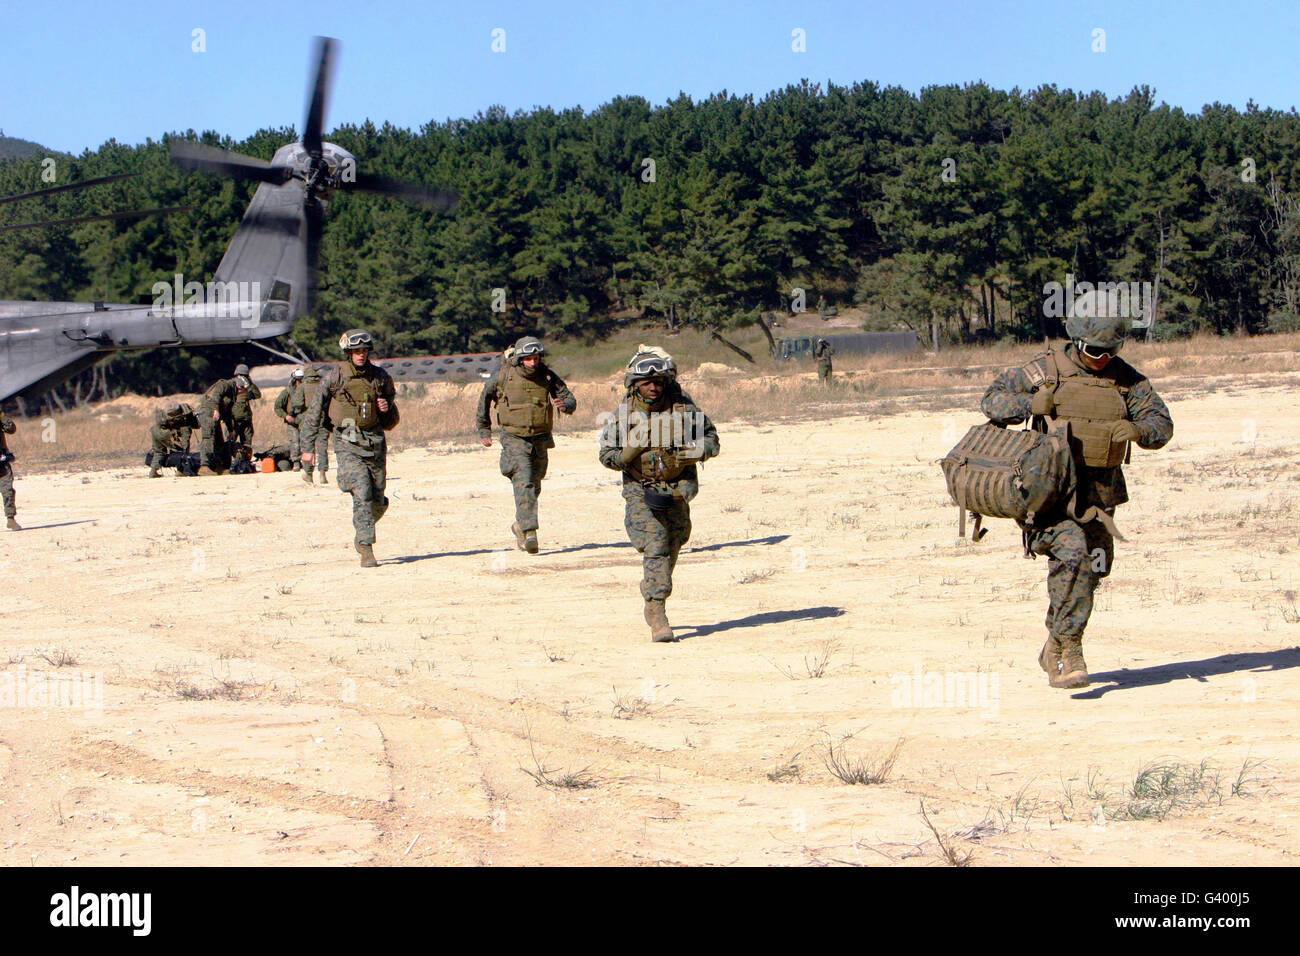 U.S. Navy corpsmen respond to a mass casualty evacuation exercise. - Stock Image